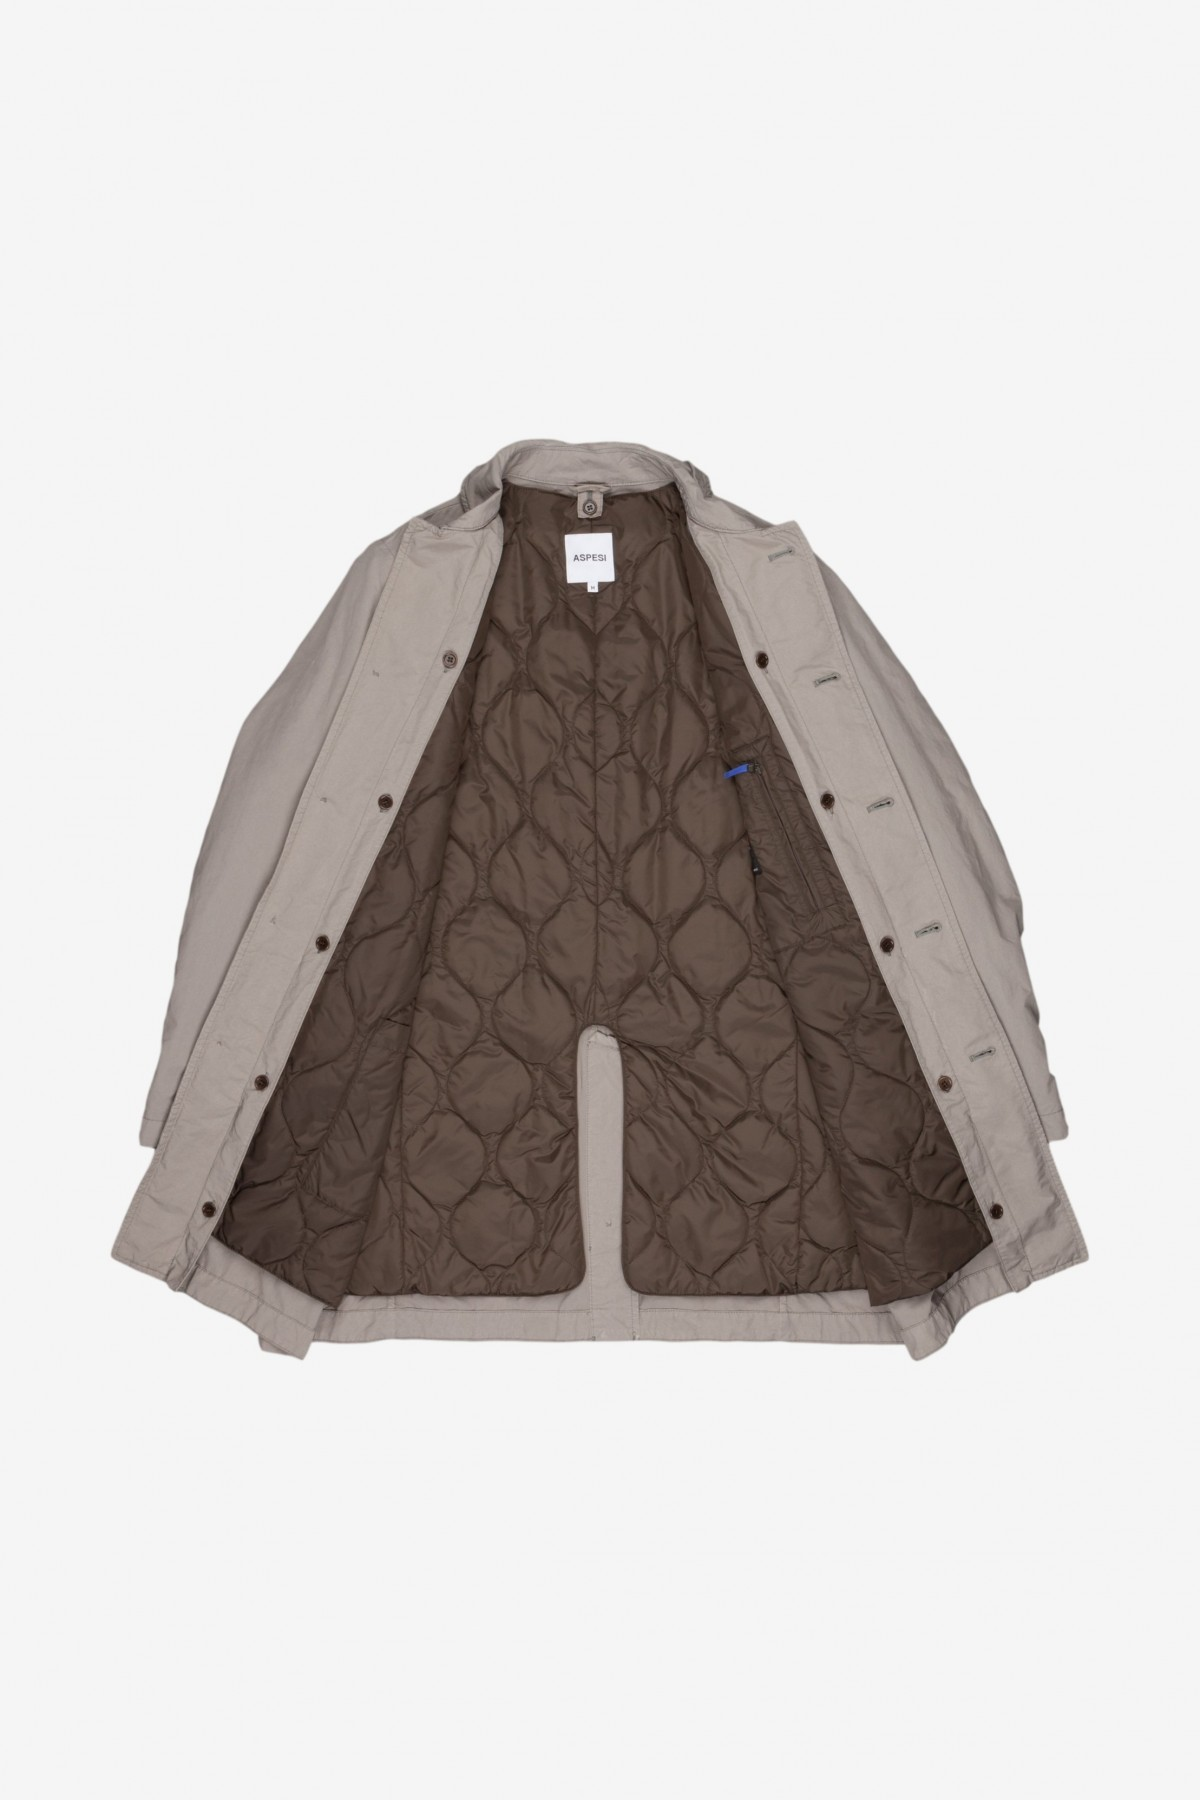 Aspesi Vodka II Raincoat in Stone